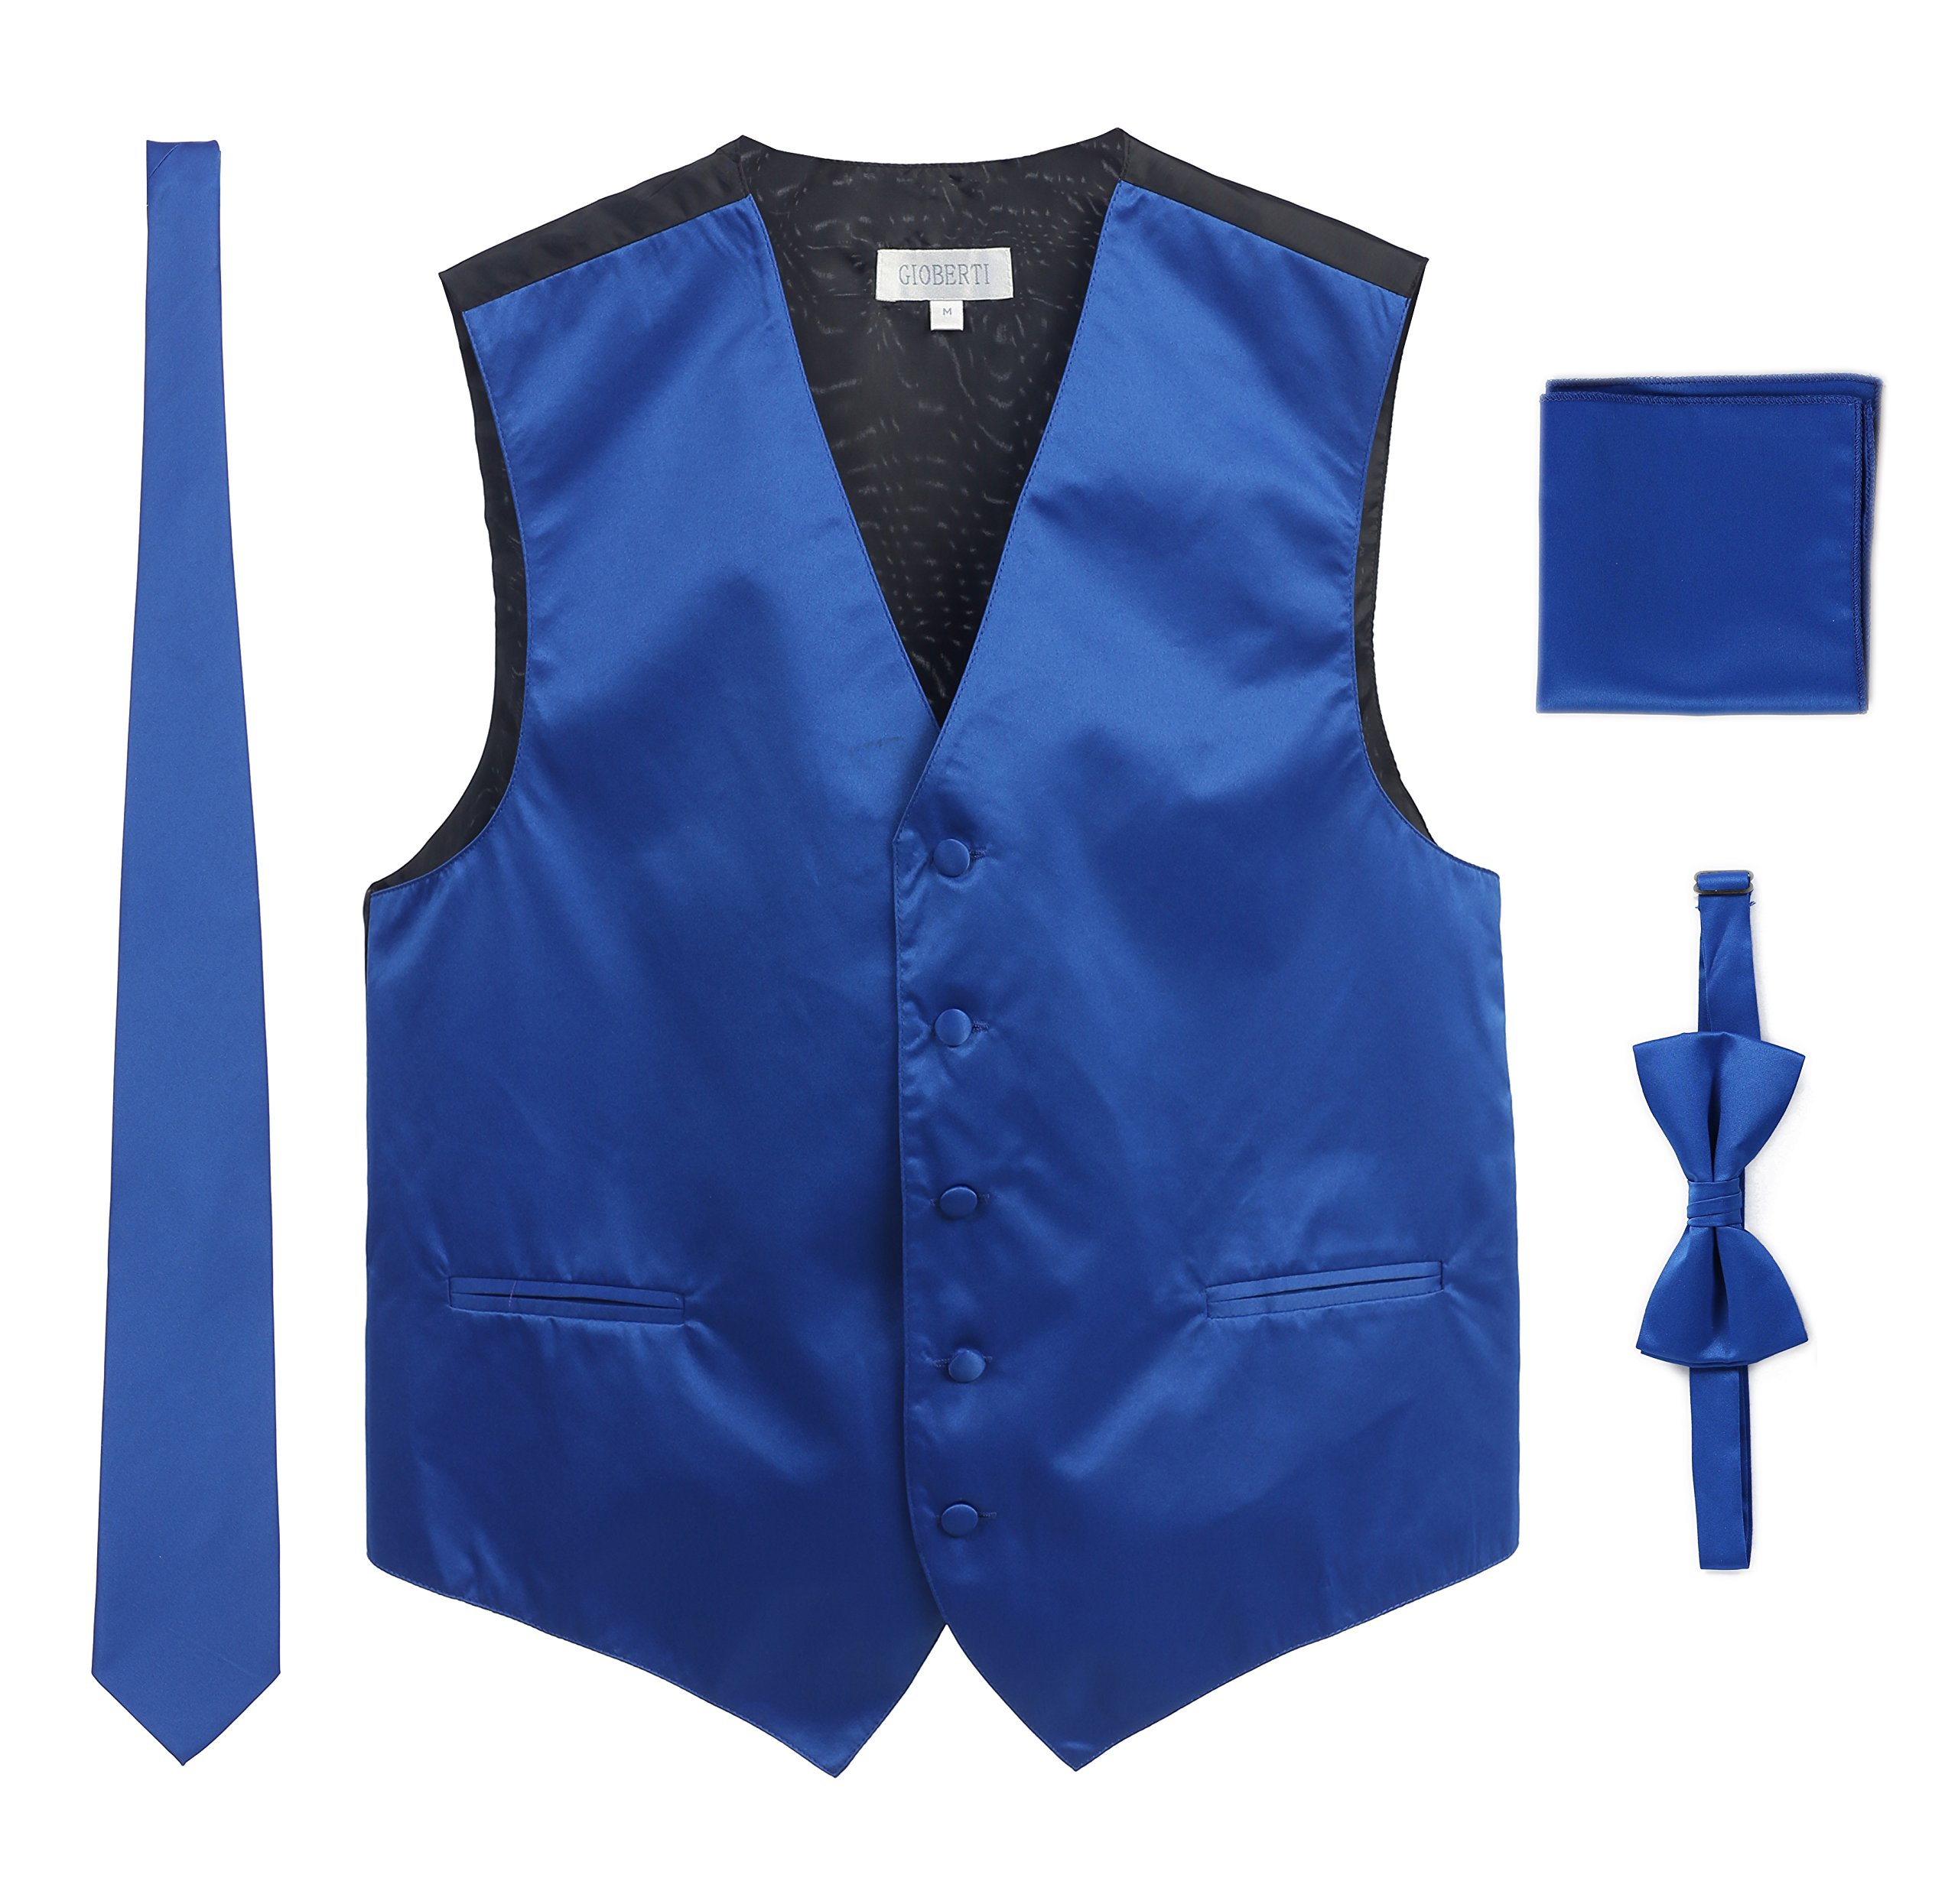 Men's Formal 4pc Satin Vest Necktie Bowtie and Pocket Square, Royal Blue, Large by Gioberti